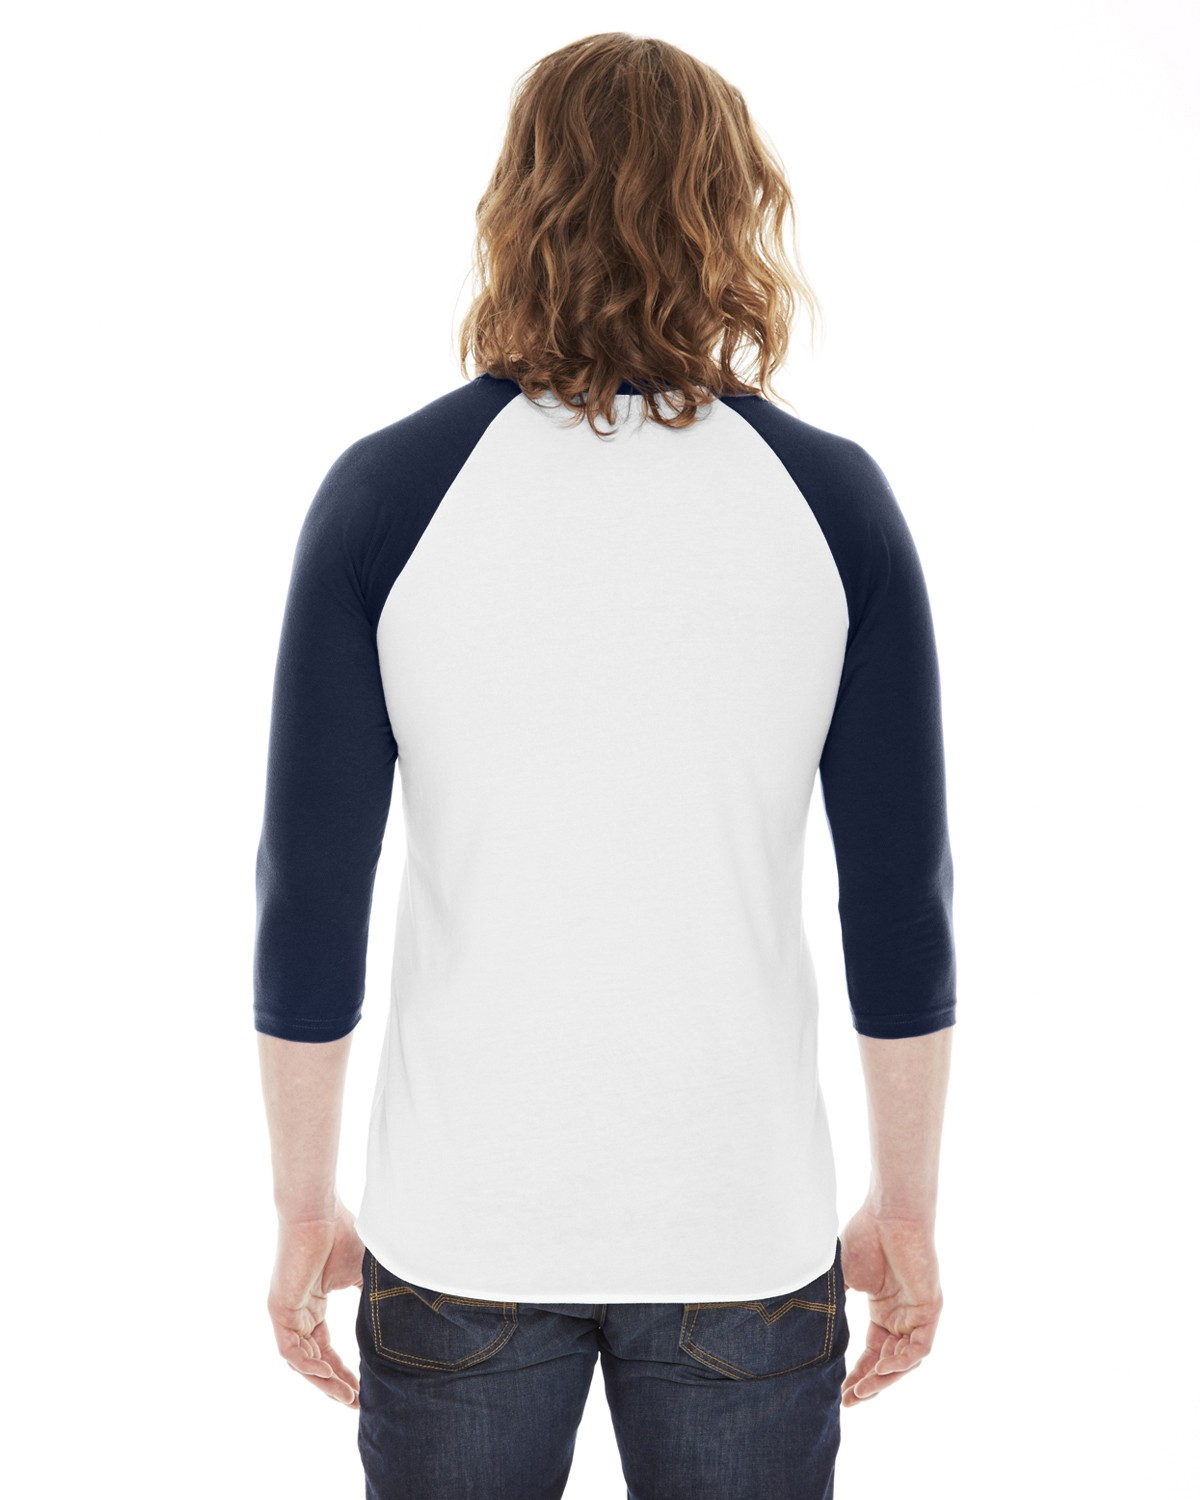 BB453W American Apparel WHITE/NAVY